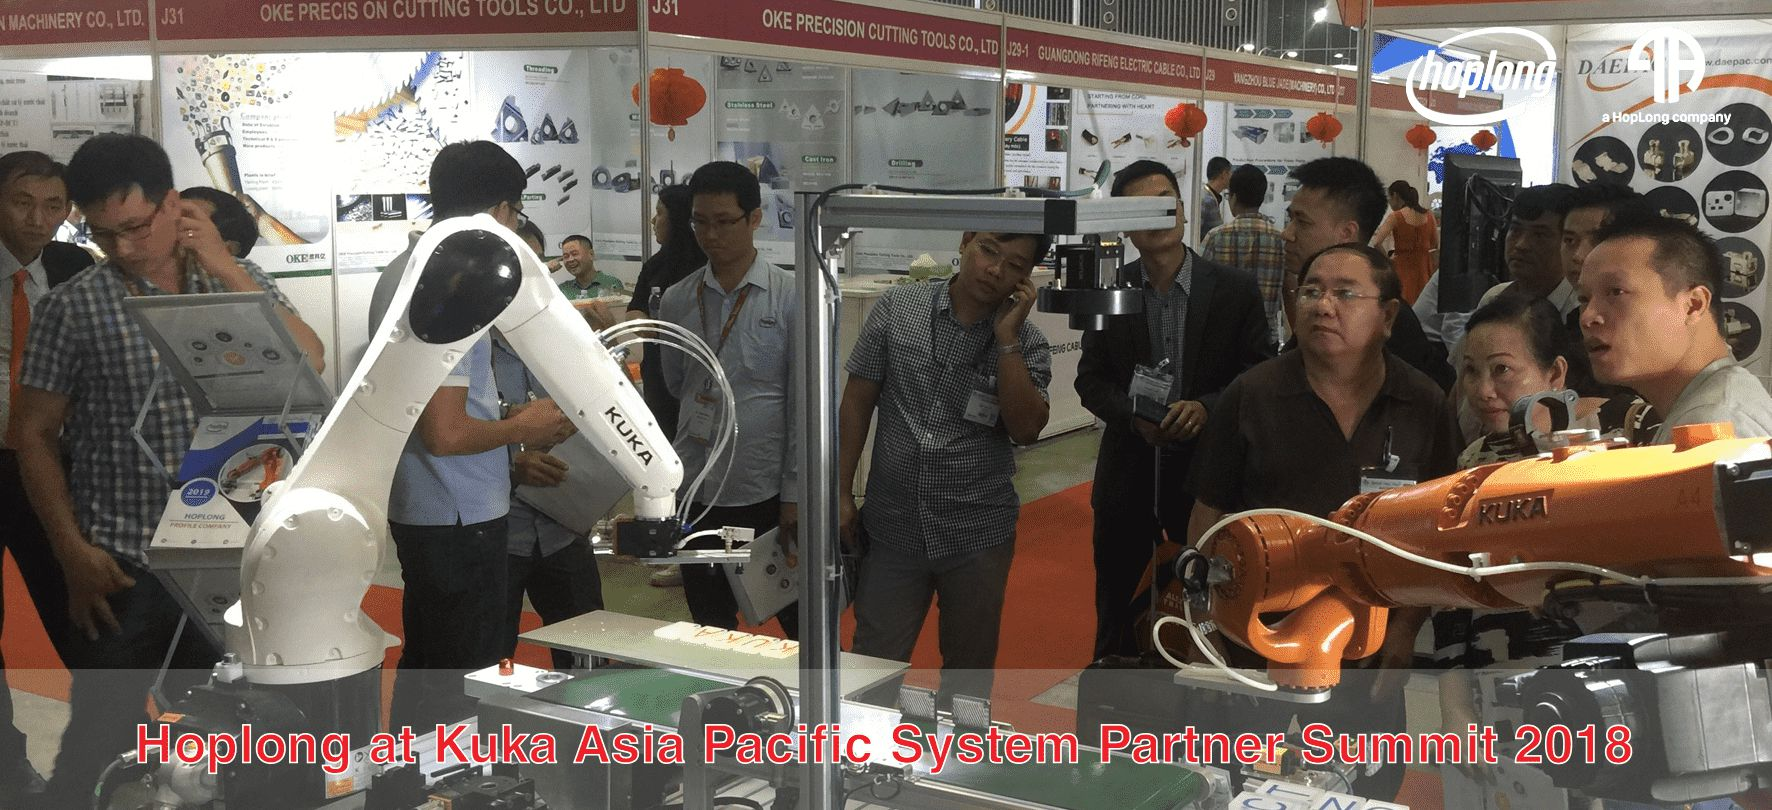 Hoplong at Kuka Asia Pacific System Partner Summit 2018